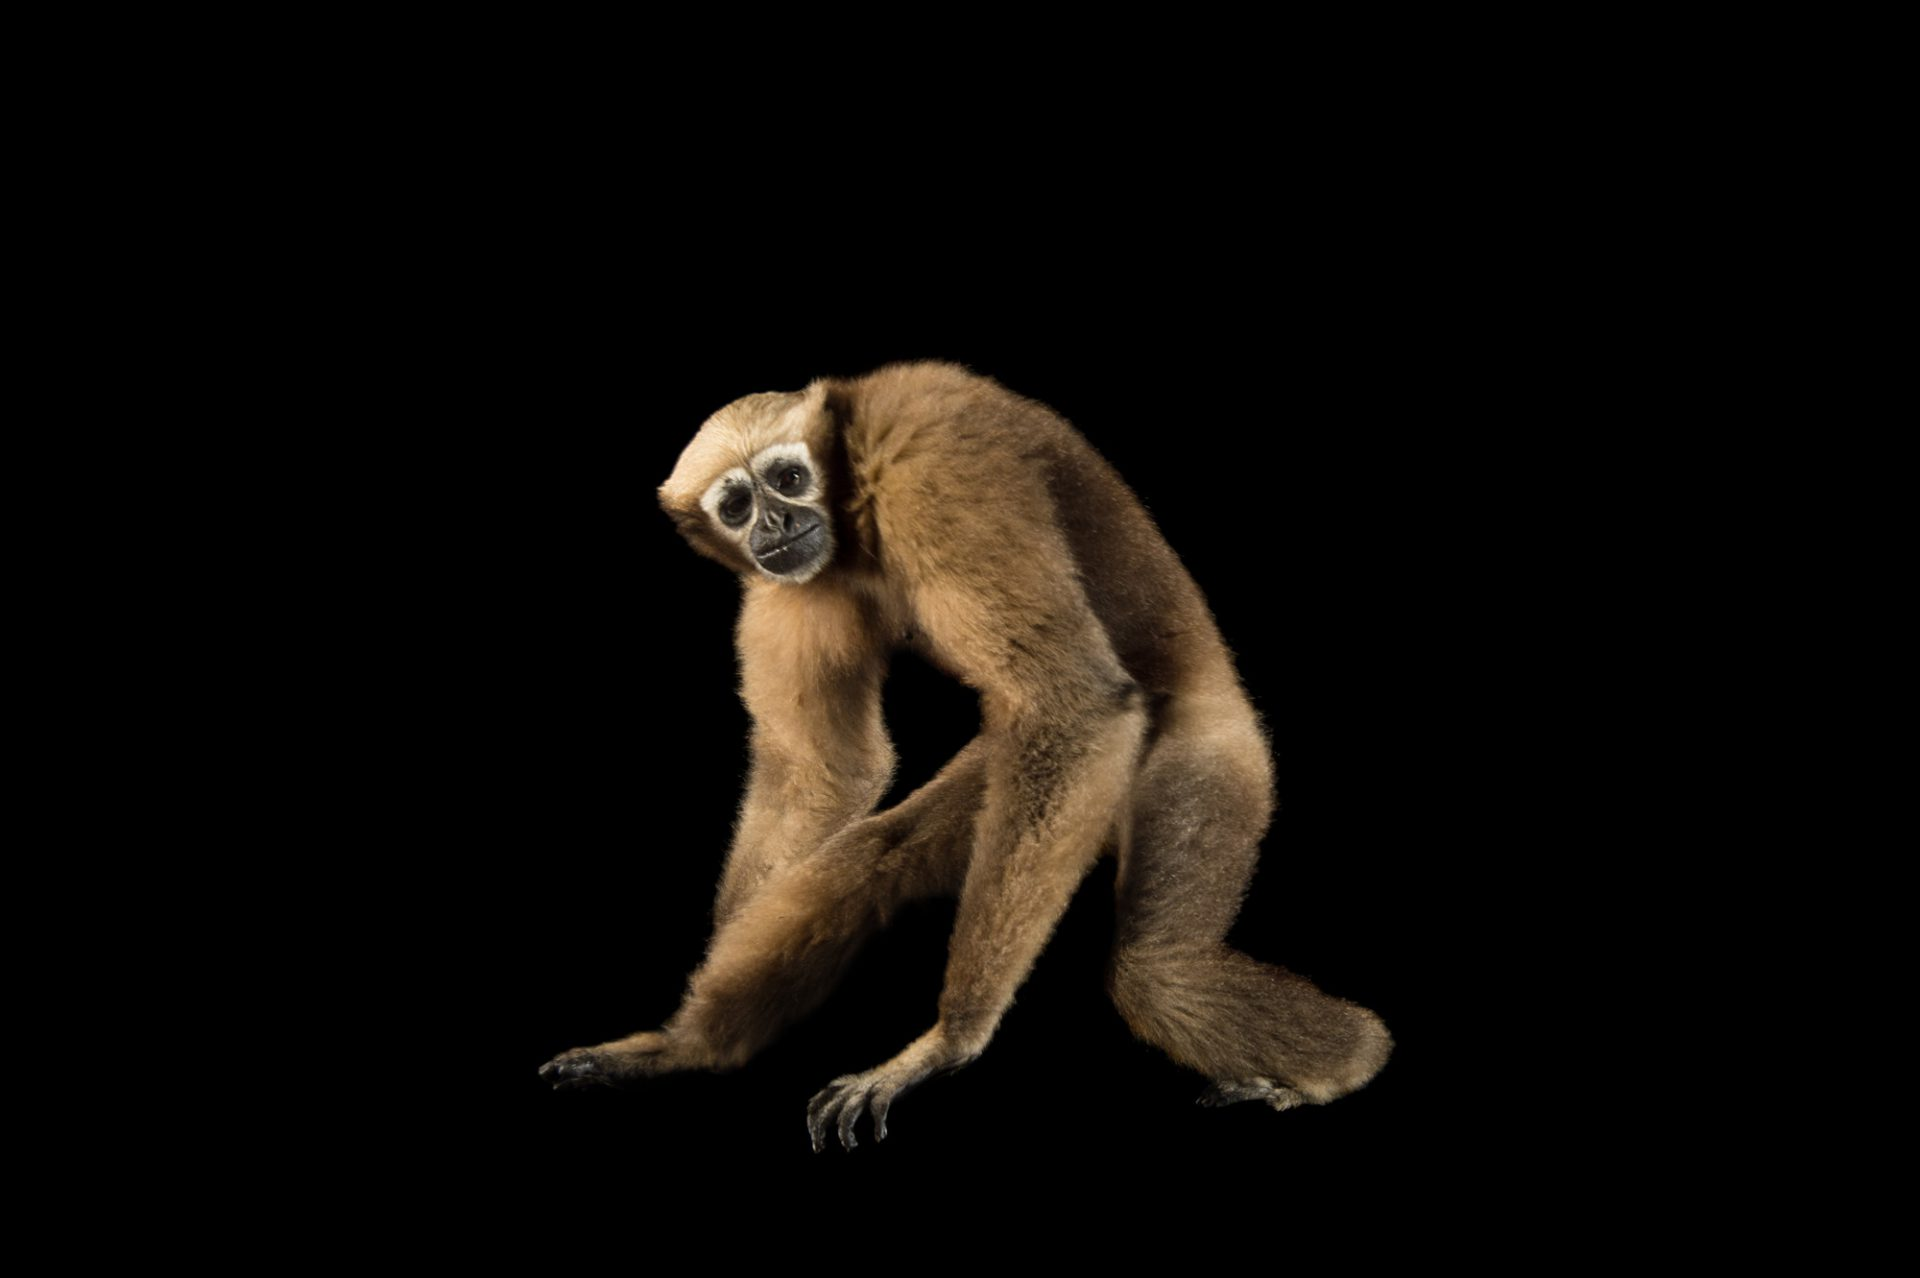 Picture of a vulnerable female Eastern hoolock gibbon (Hoolock leuconedys) at the Gibbon Conservation Center.